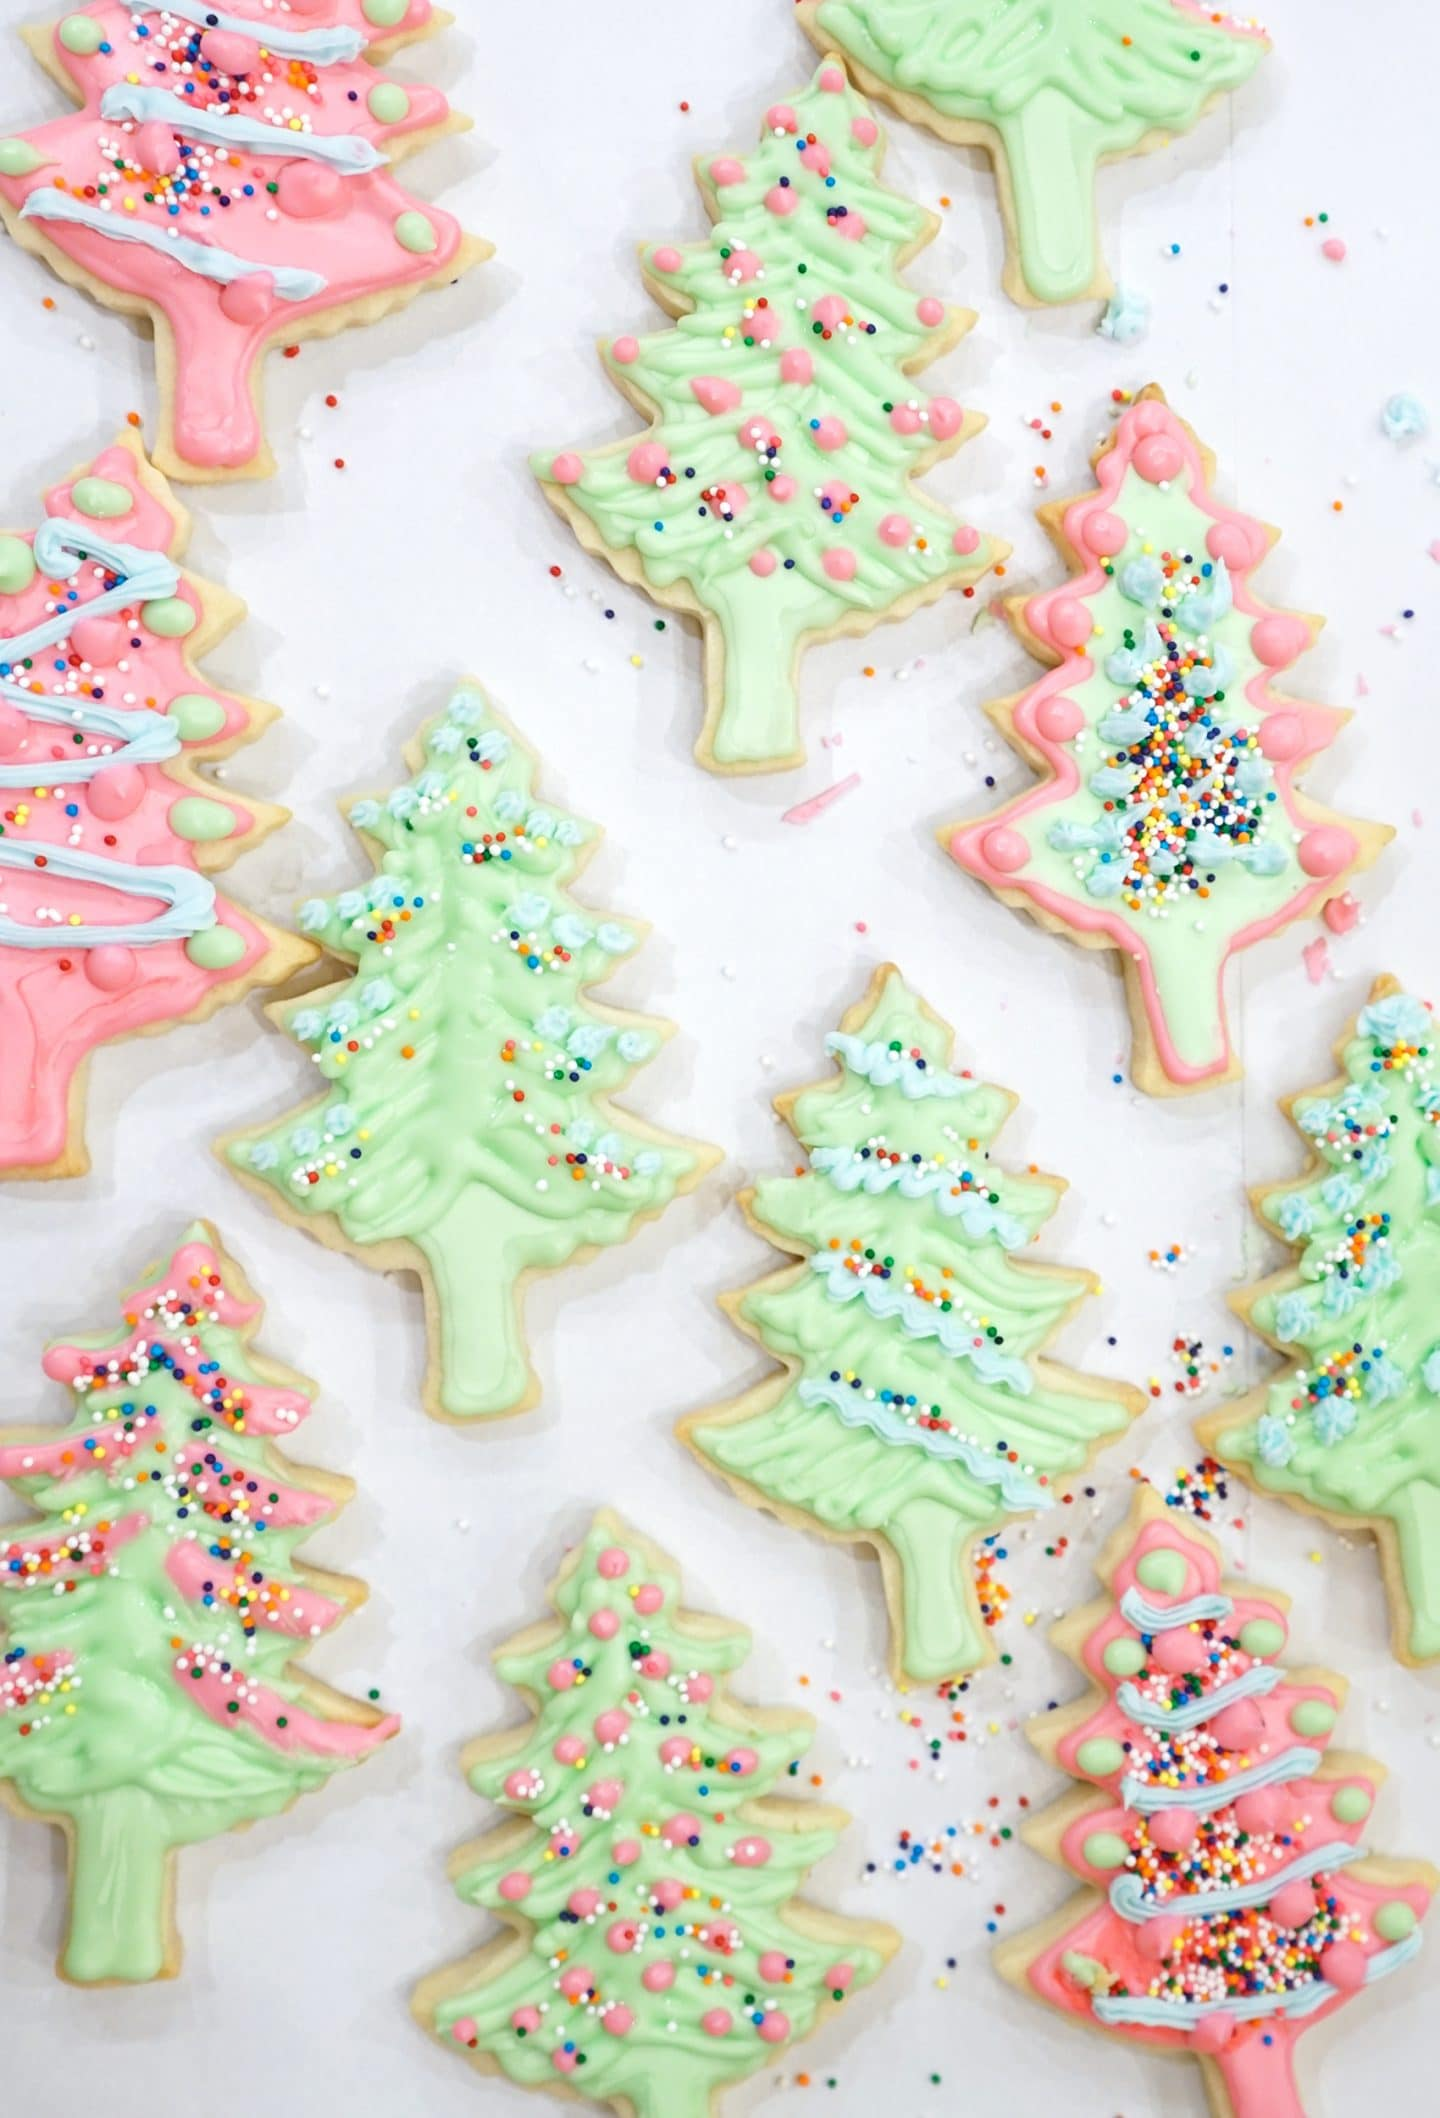 Christmas Cut Out Sugar Cookies Ashley Brooke Designs